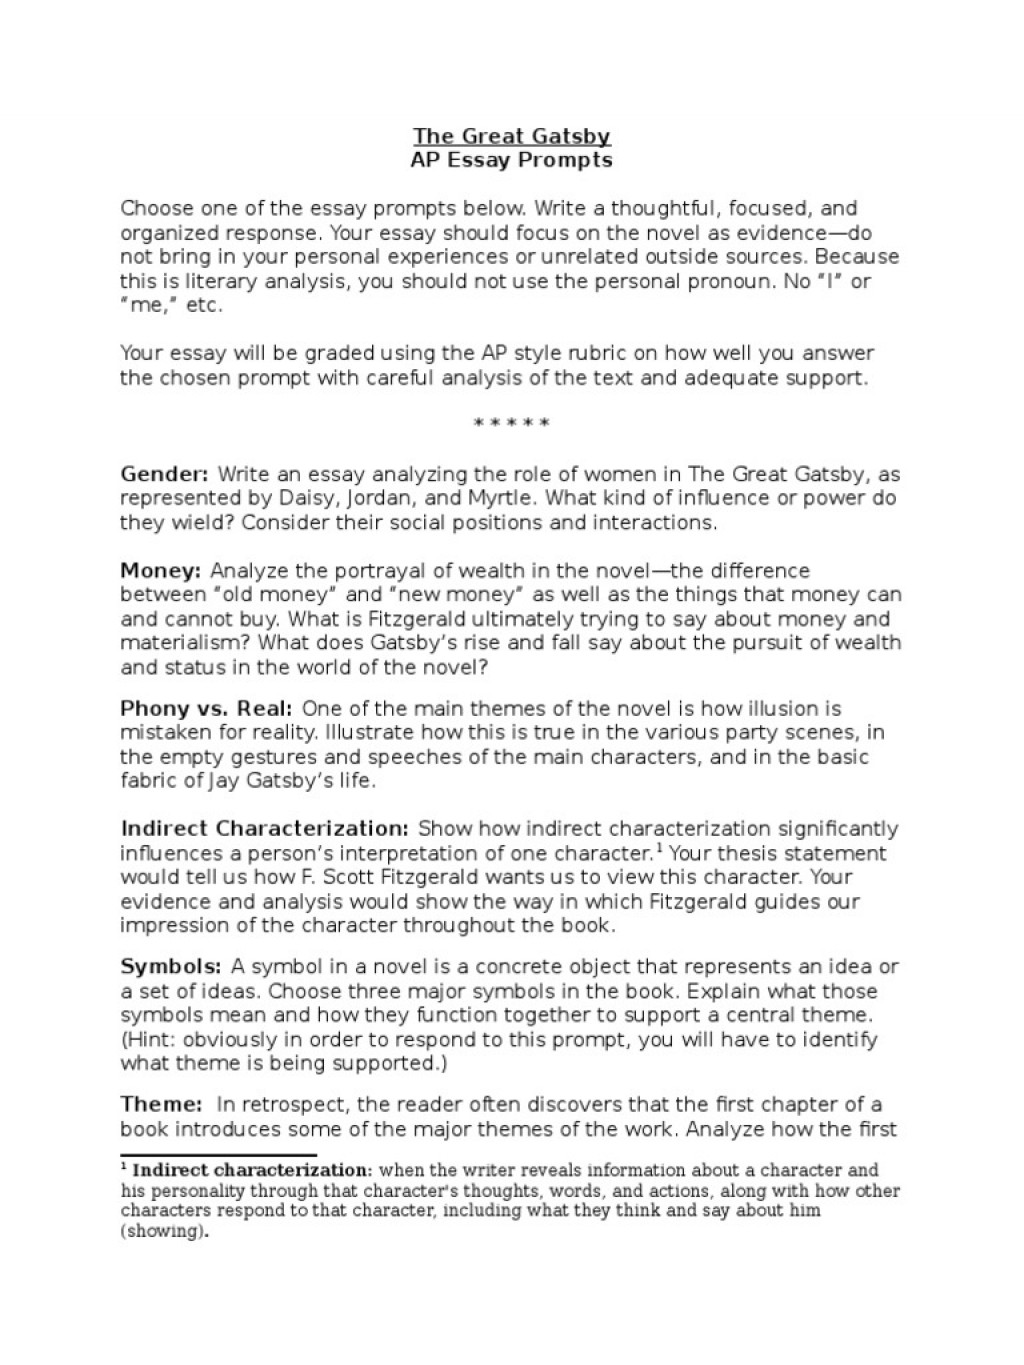 002 Essay Example The Great Gatsby Prompts 588d289cb6d87f2a538b490d Exceptional Topics American Dream Questions And Answers Research Large